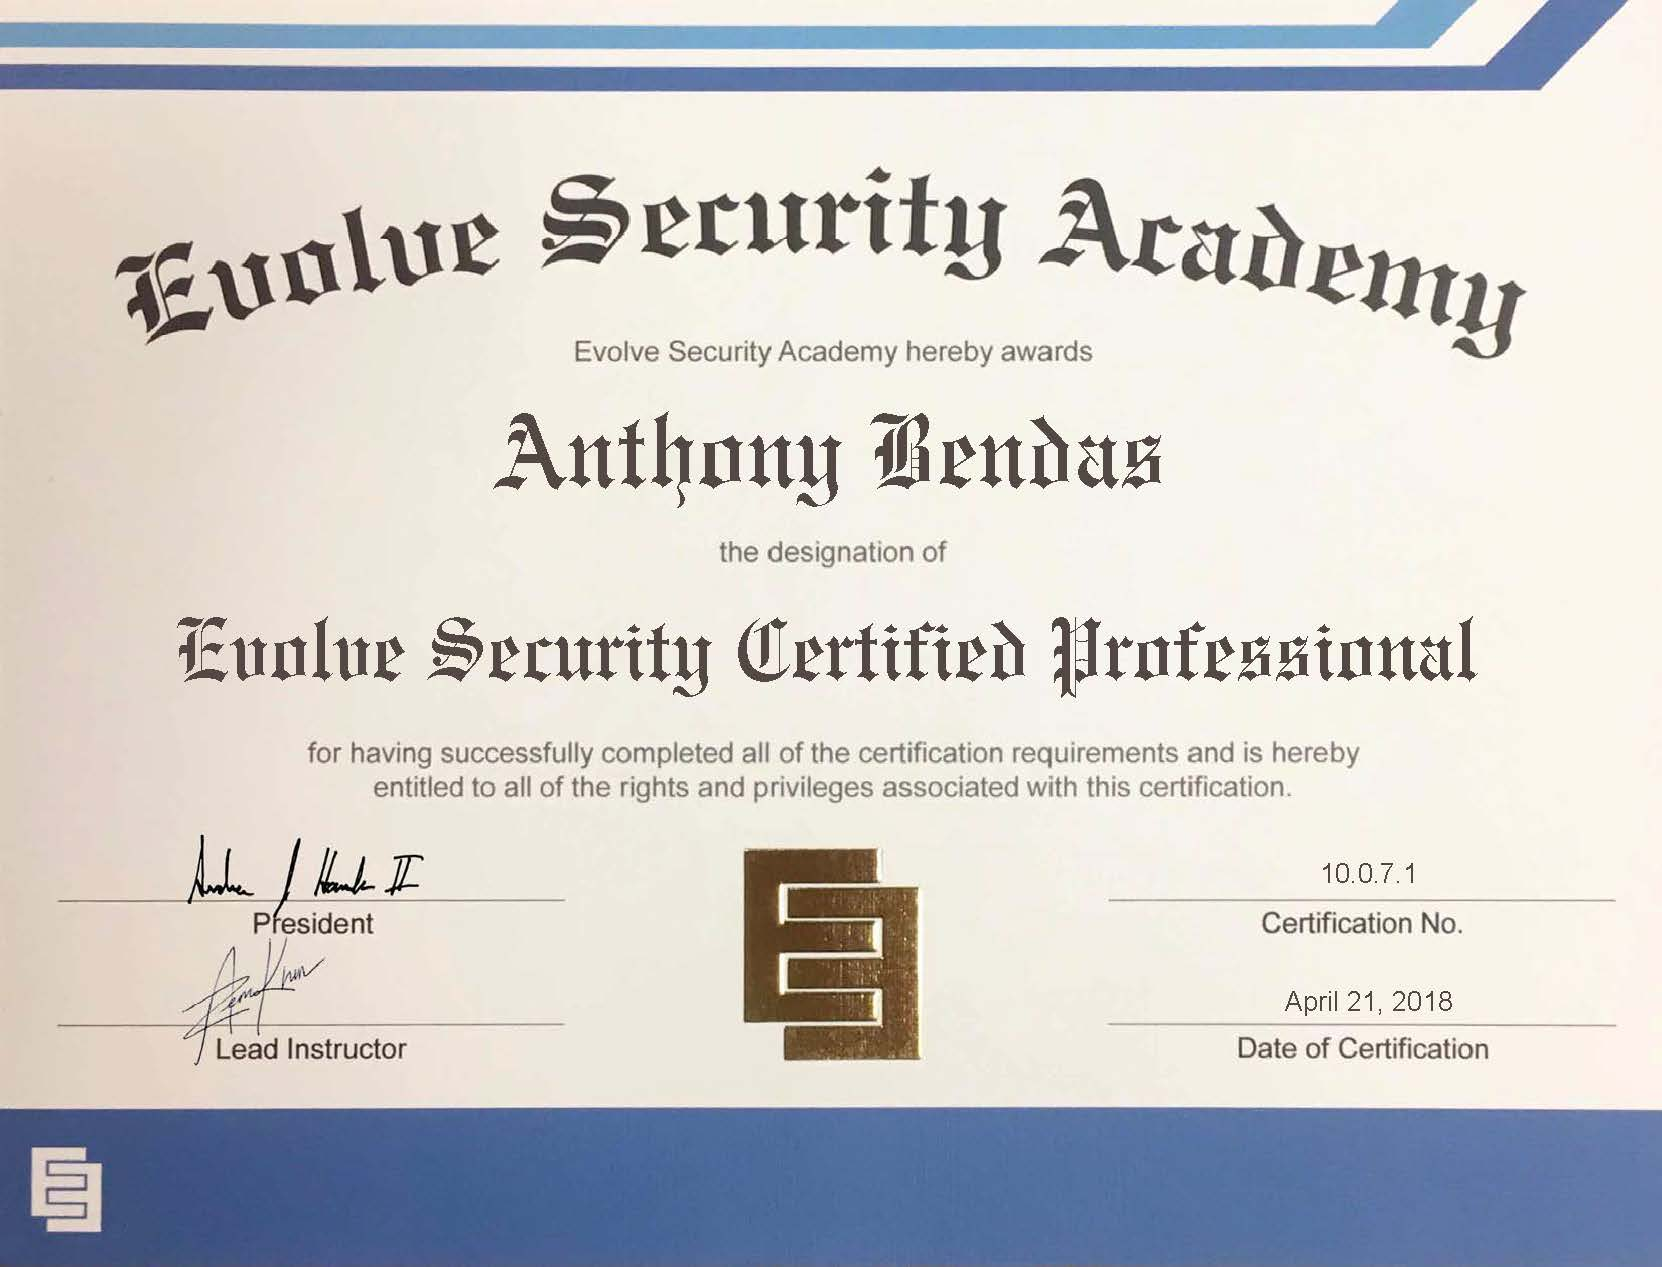 Evolve Security Cyber Security Services And Academy